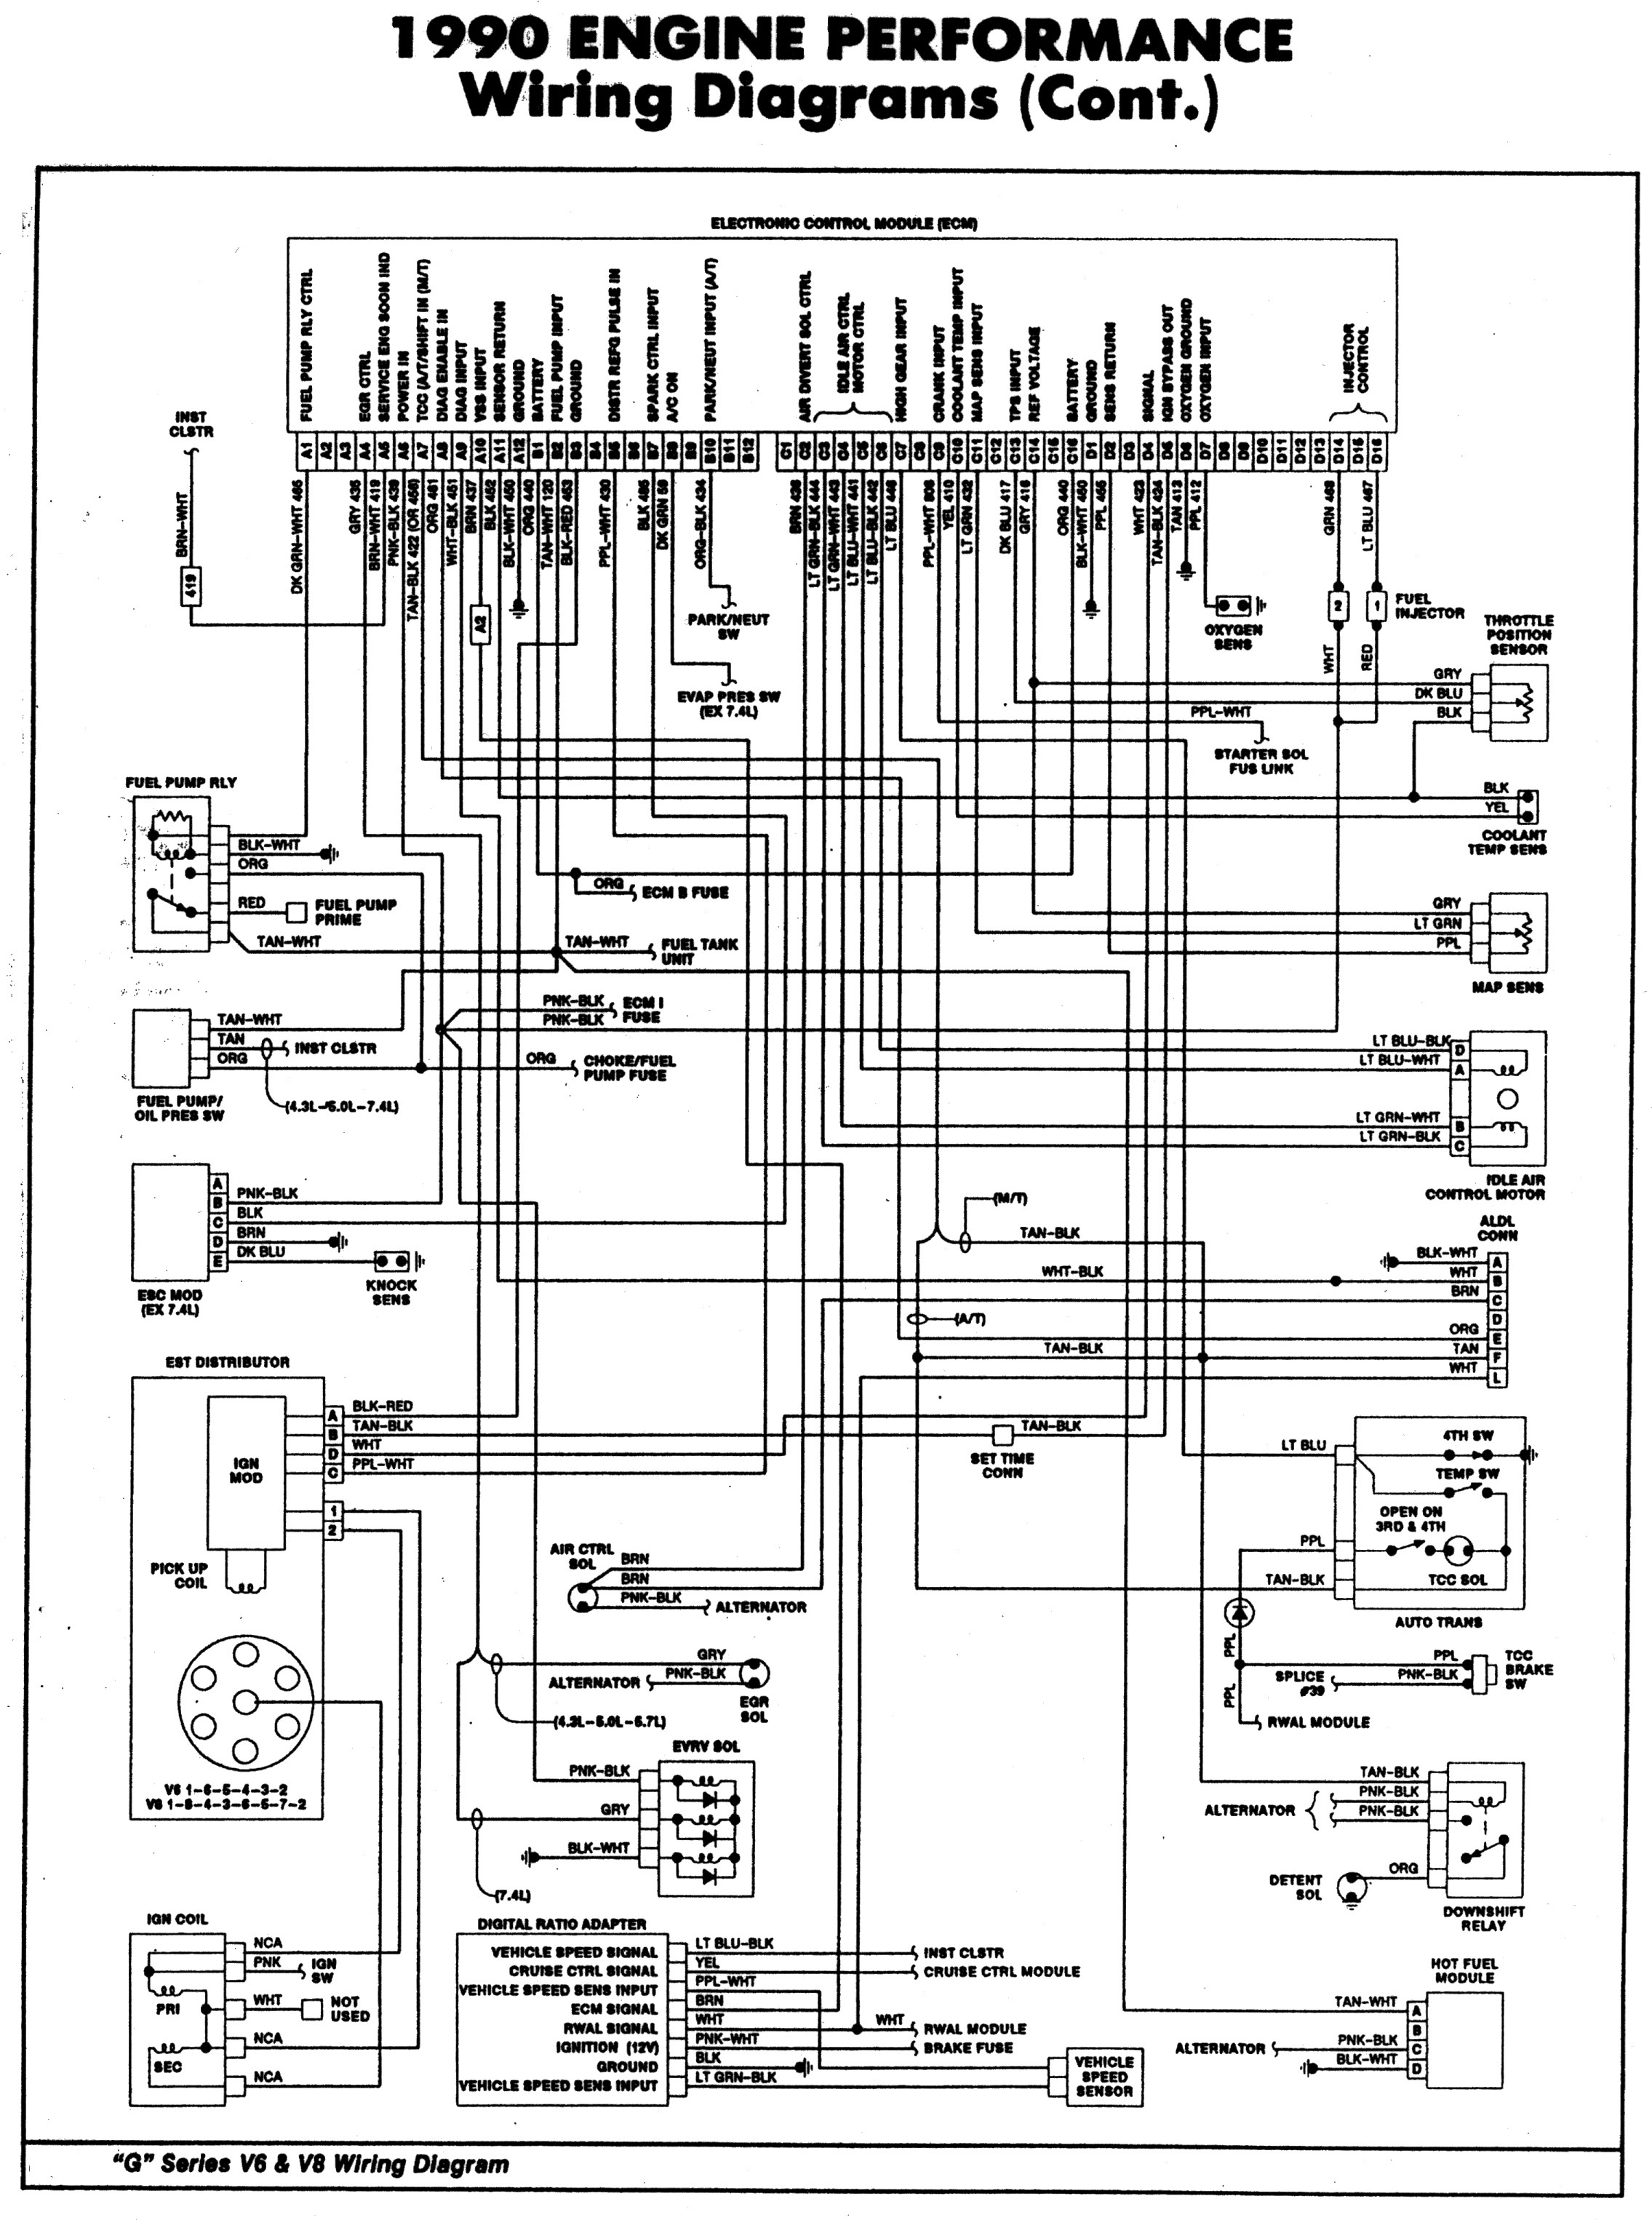 medium resolution of ignitiondiagram 1990 chevy suburban tbi 350 installation land rh pinterest com 1990 gmc suburban wiring diagram 1990 chevy suburban wiring diagram